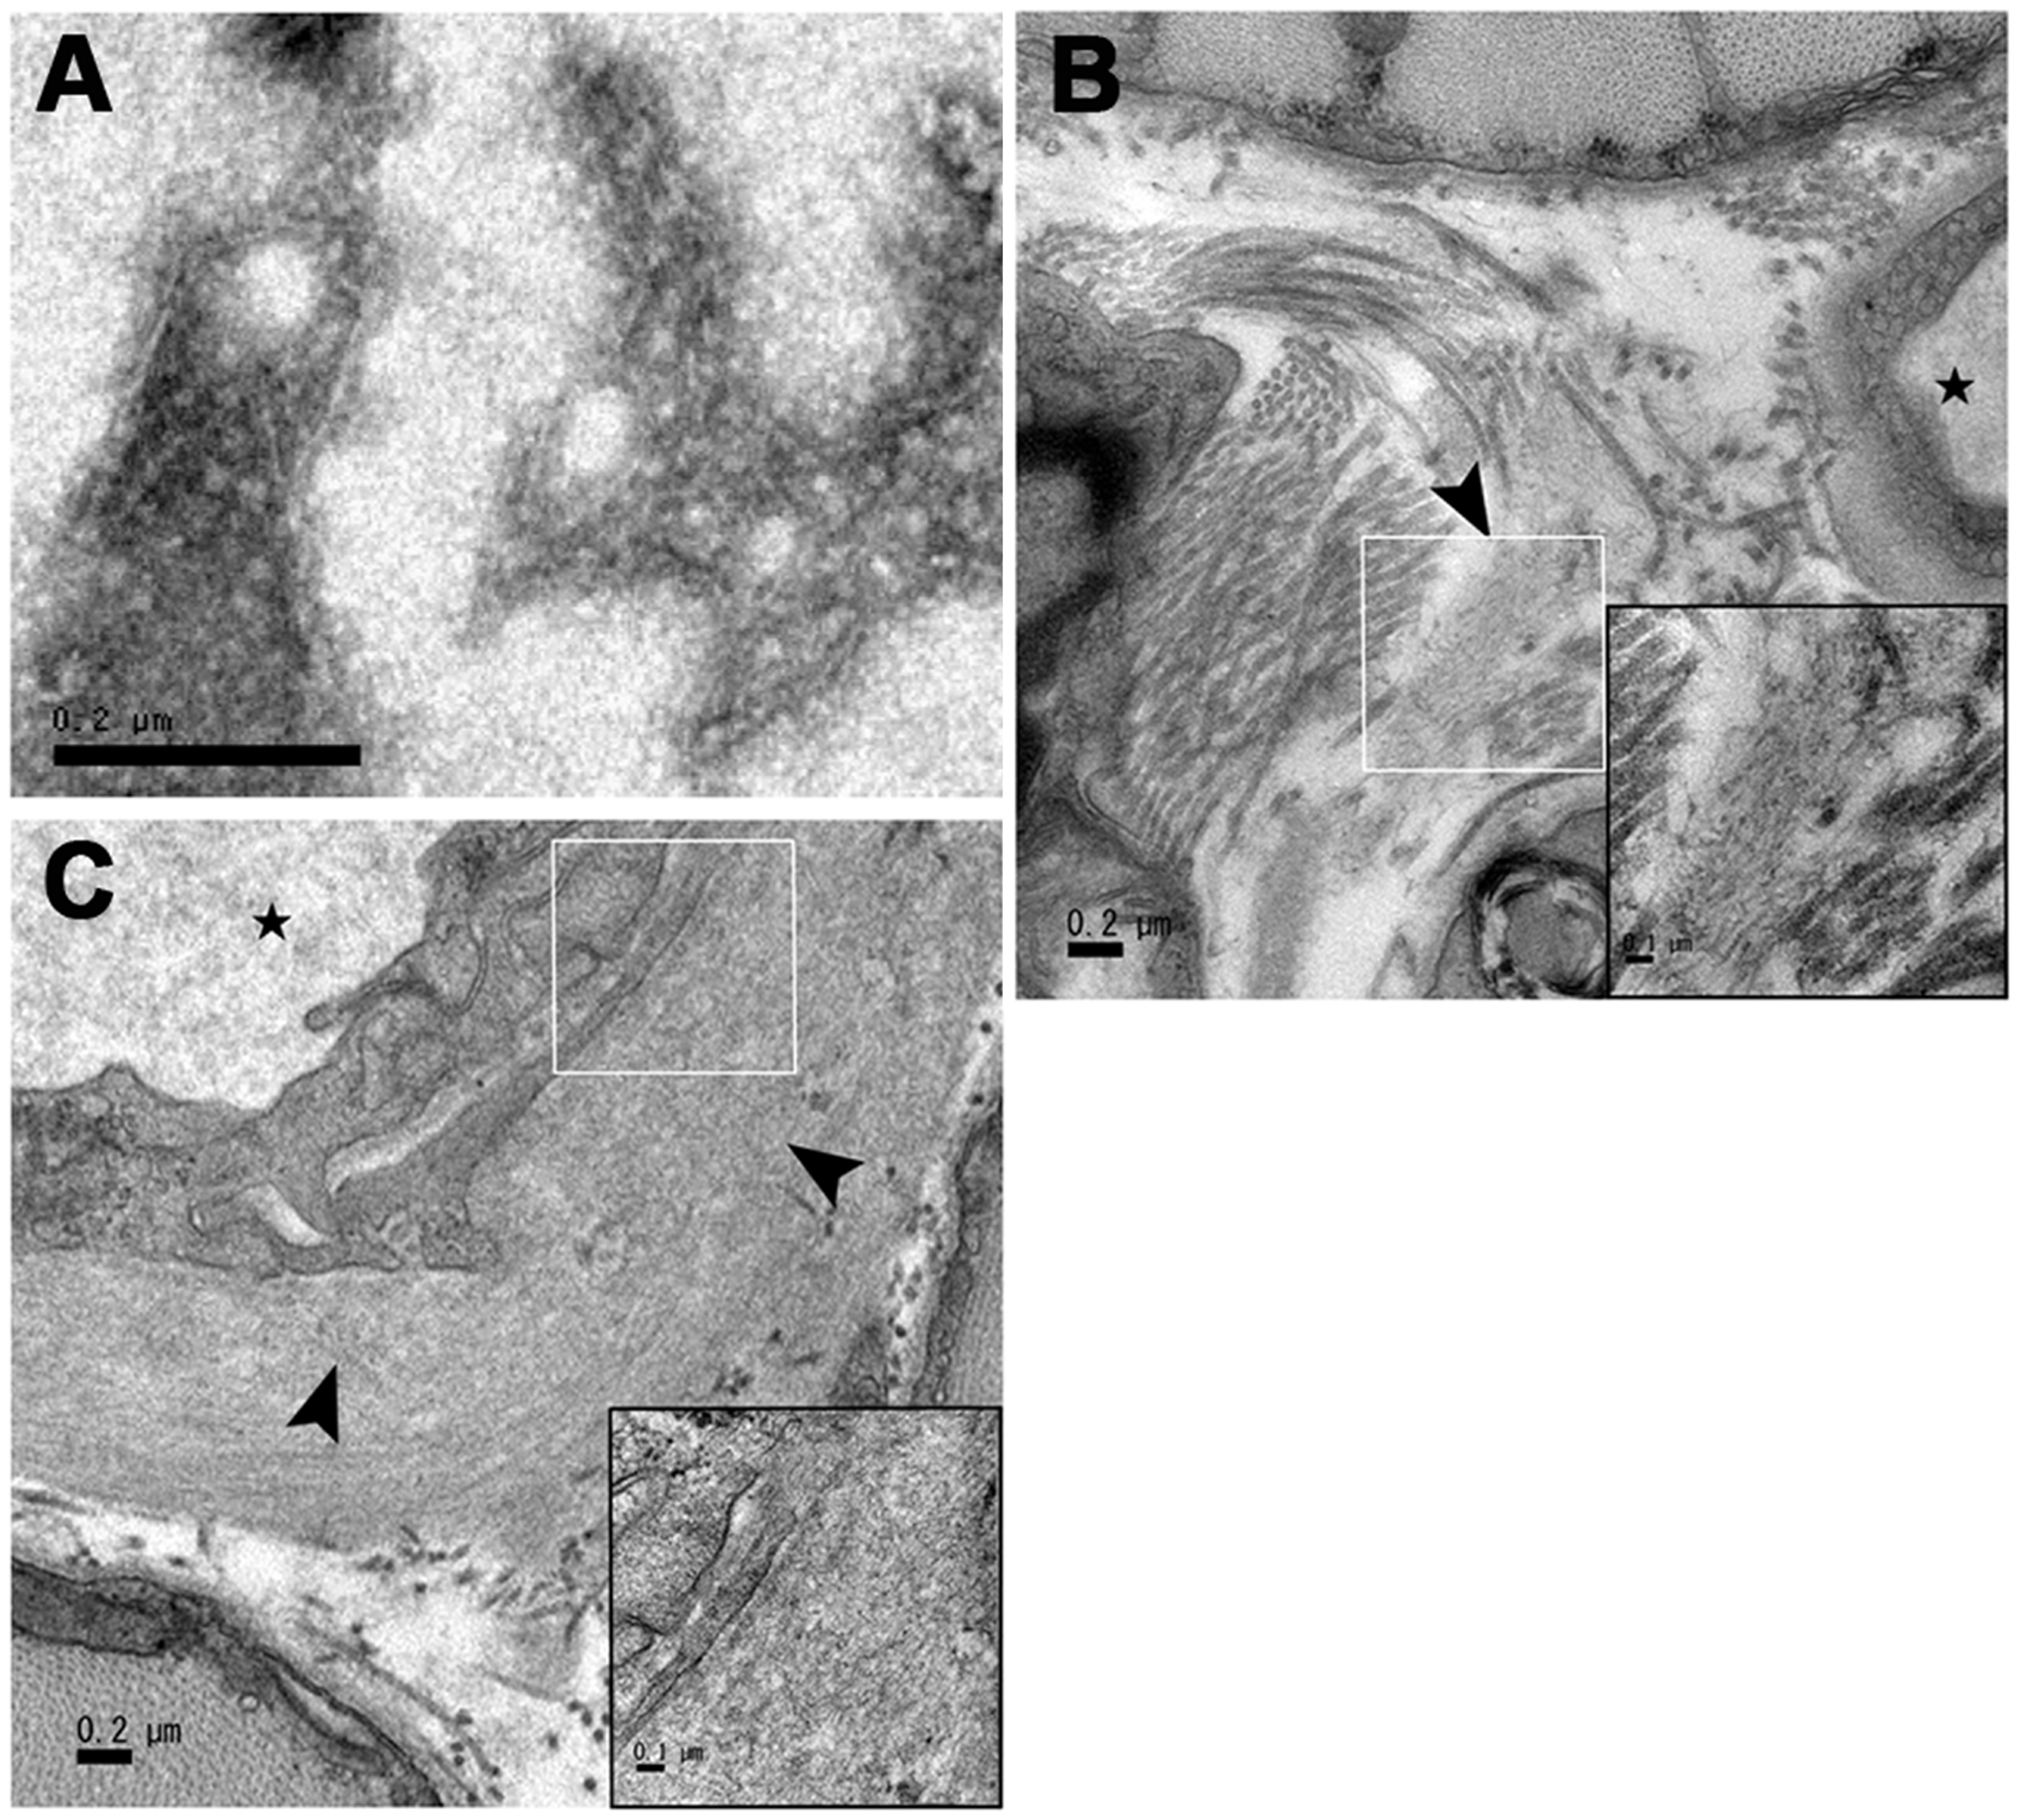 Transmission electron microscopy images of amyloid fibrils deposited in muscles.